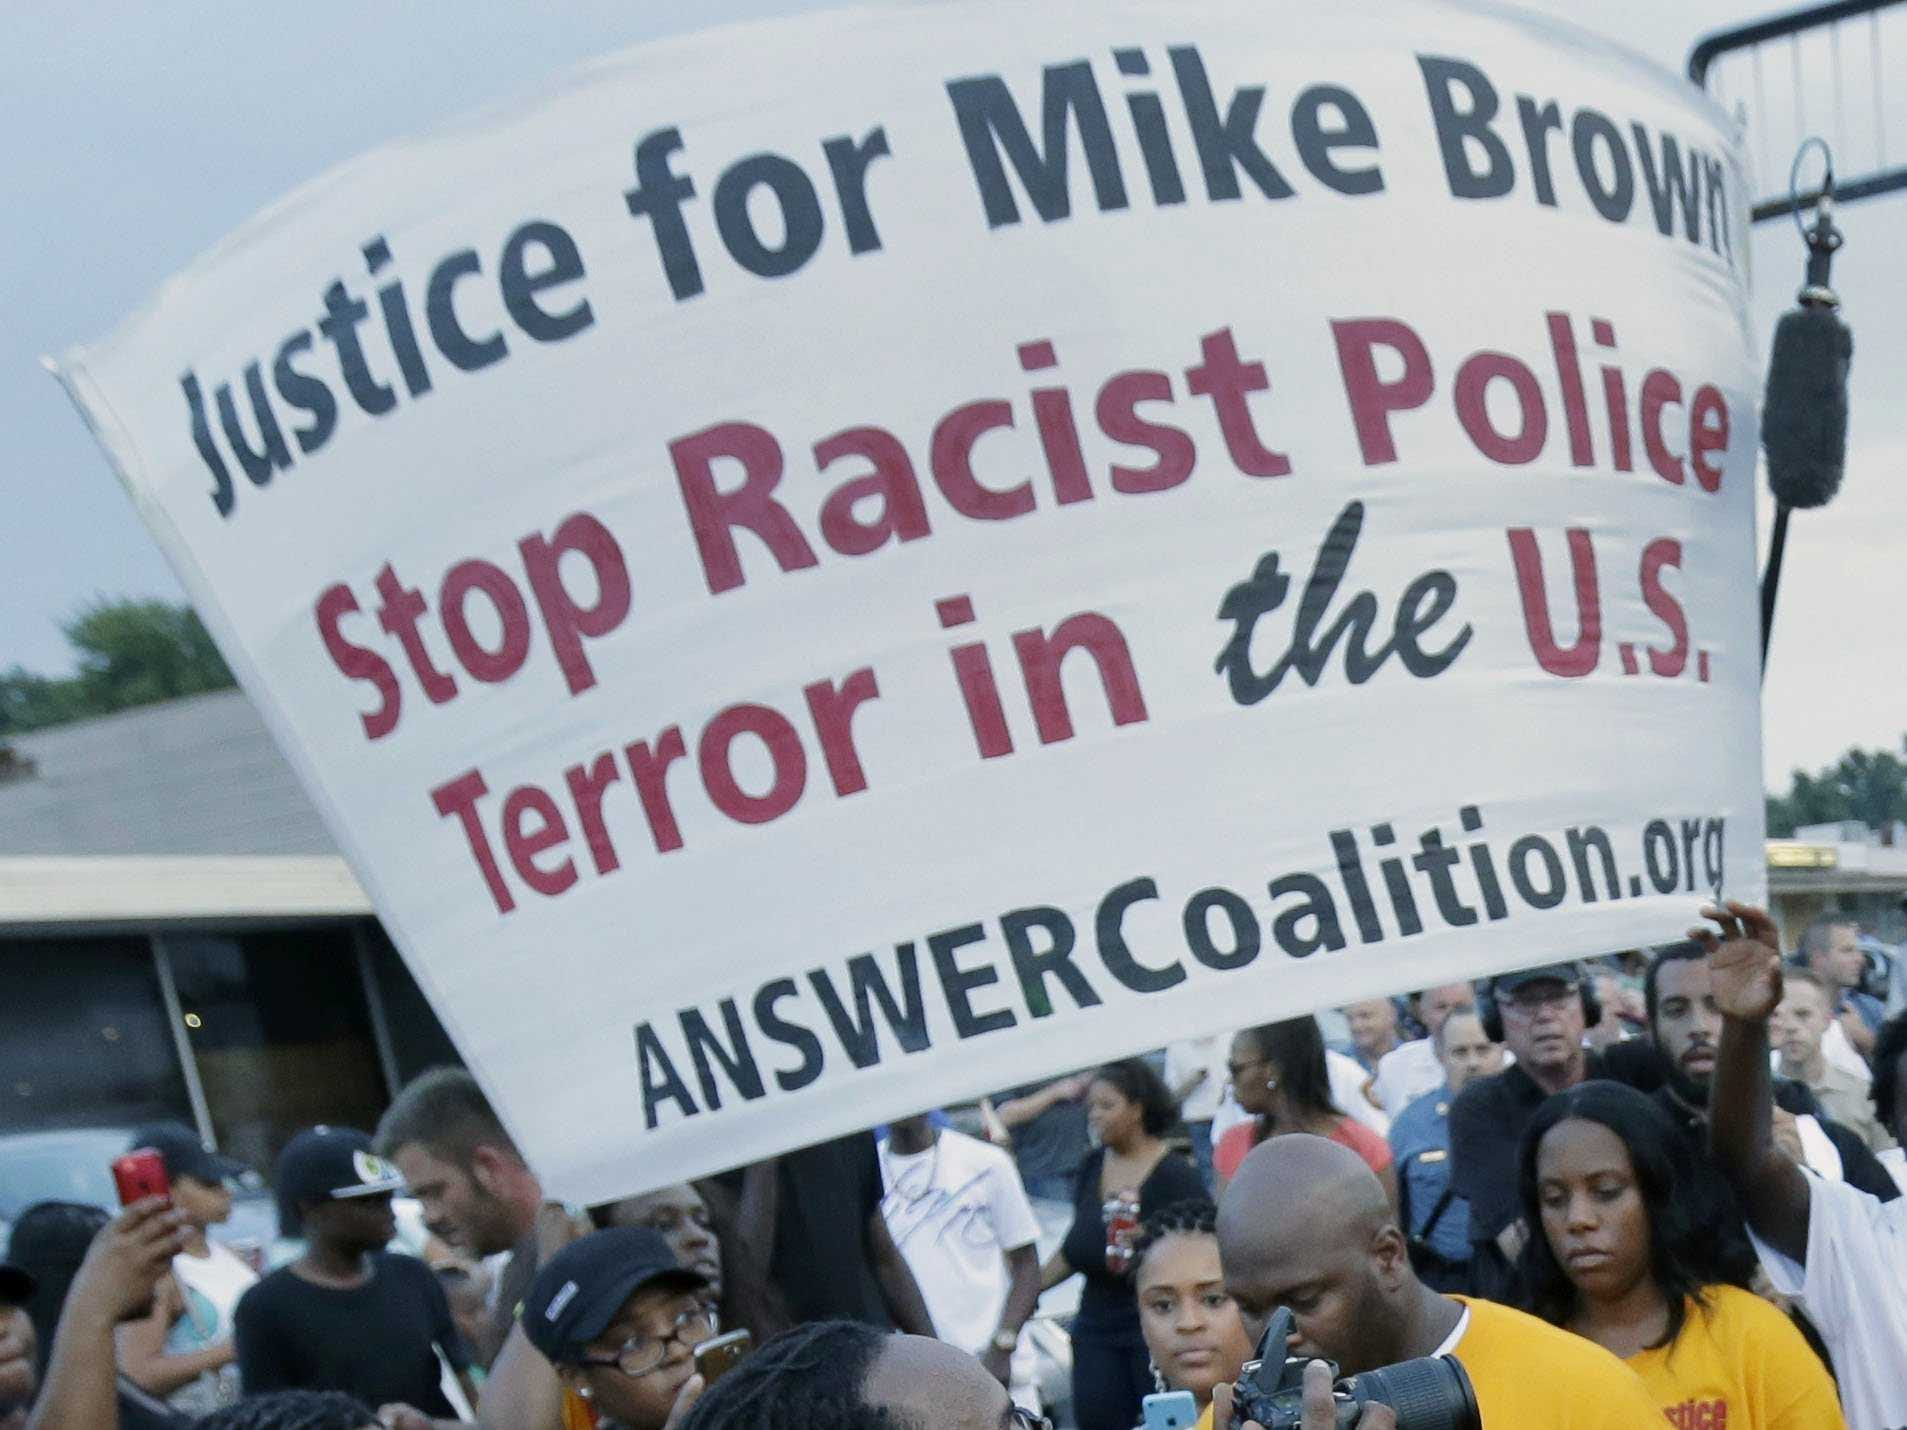 http://static1.businessinsider.com/image/53f0c5036bb3f7ad414213d1/eric-holder-orders-federal-medical-examiner-to-take-another-look-at-ferguson-missouri-teens-death.jpg